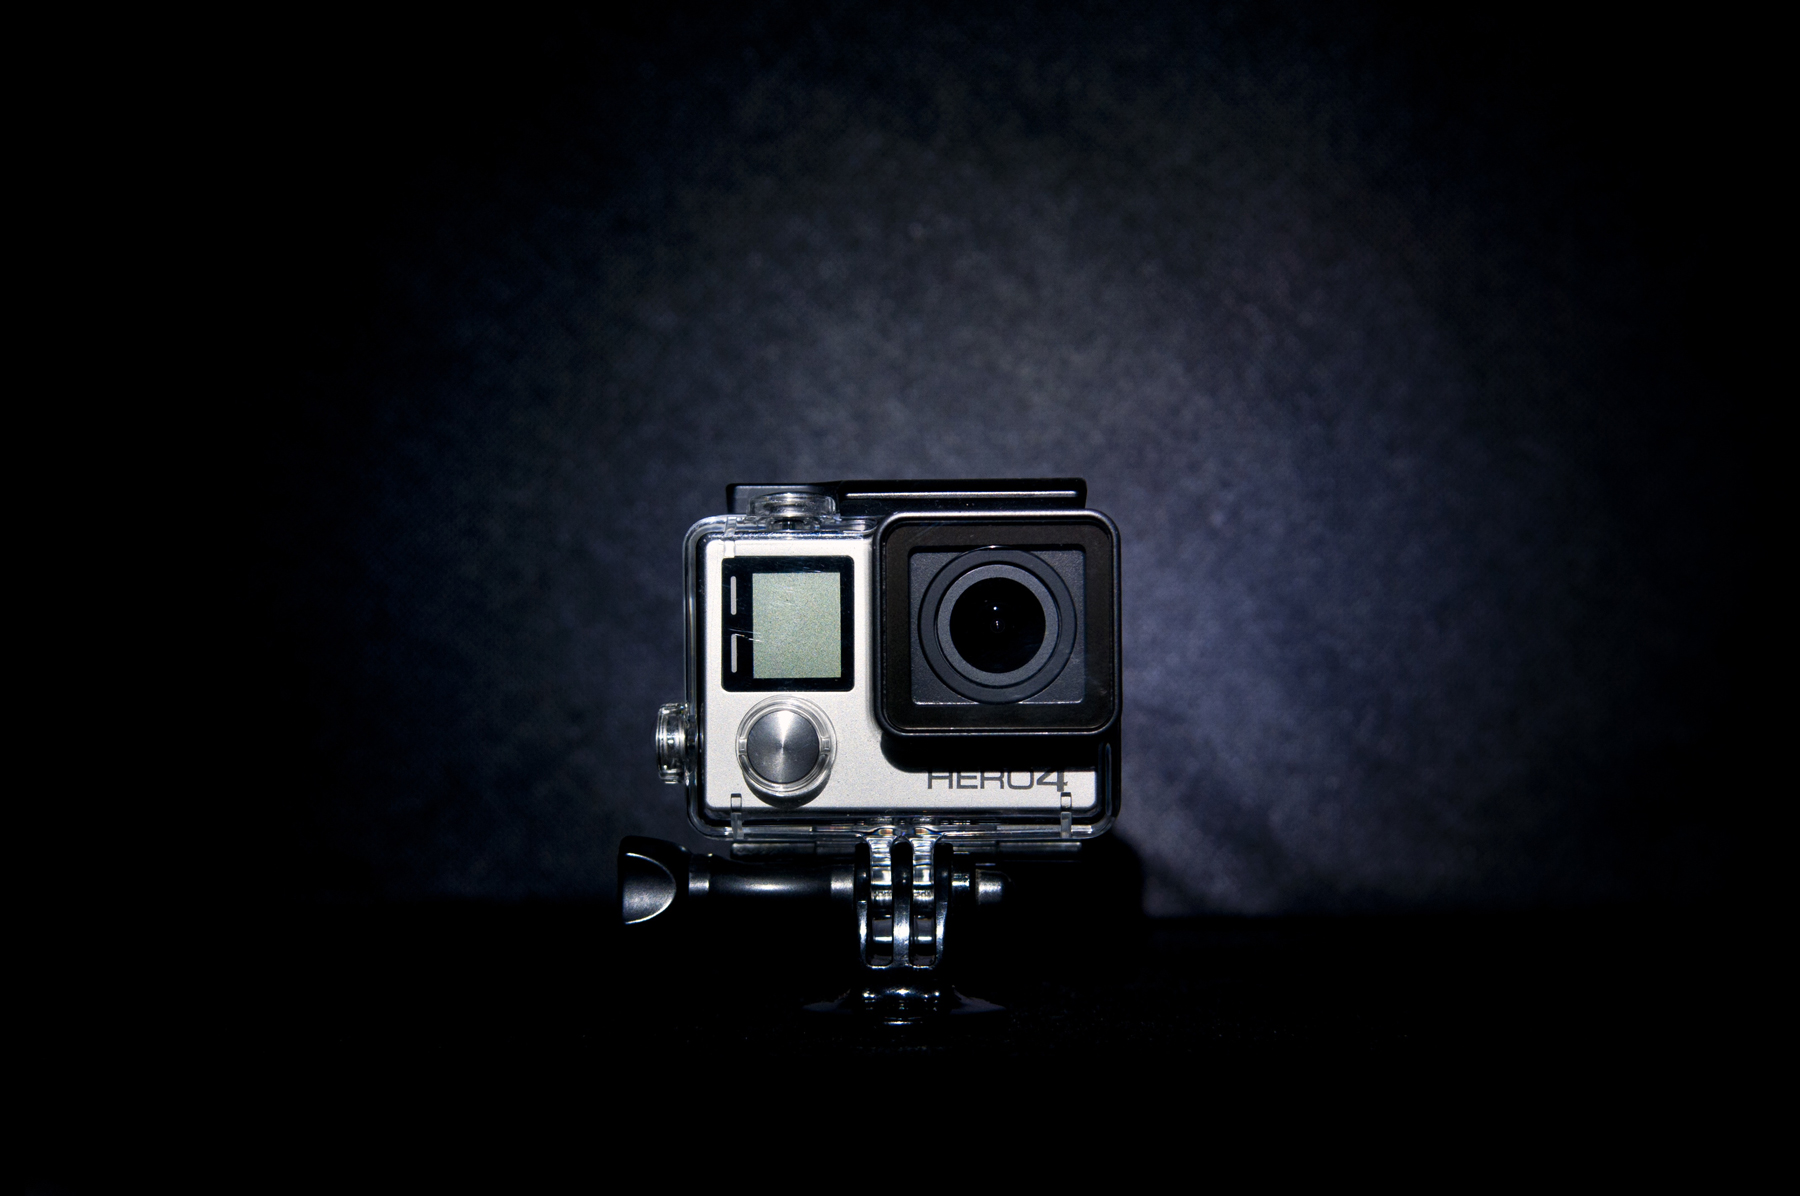 A GoPro set up in a dark room